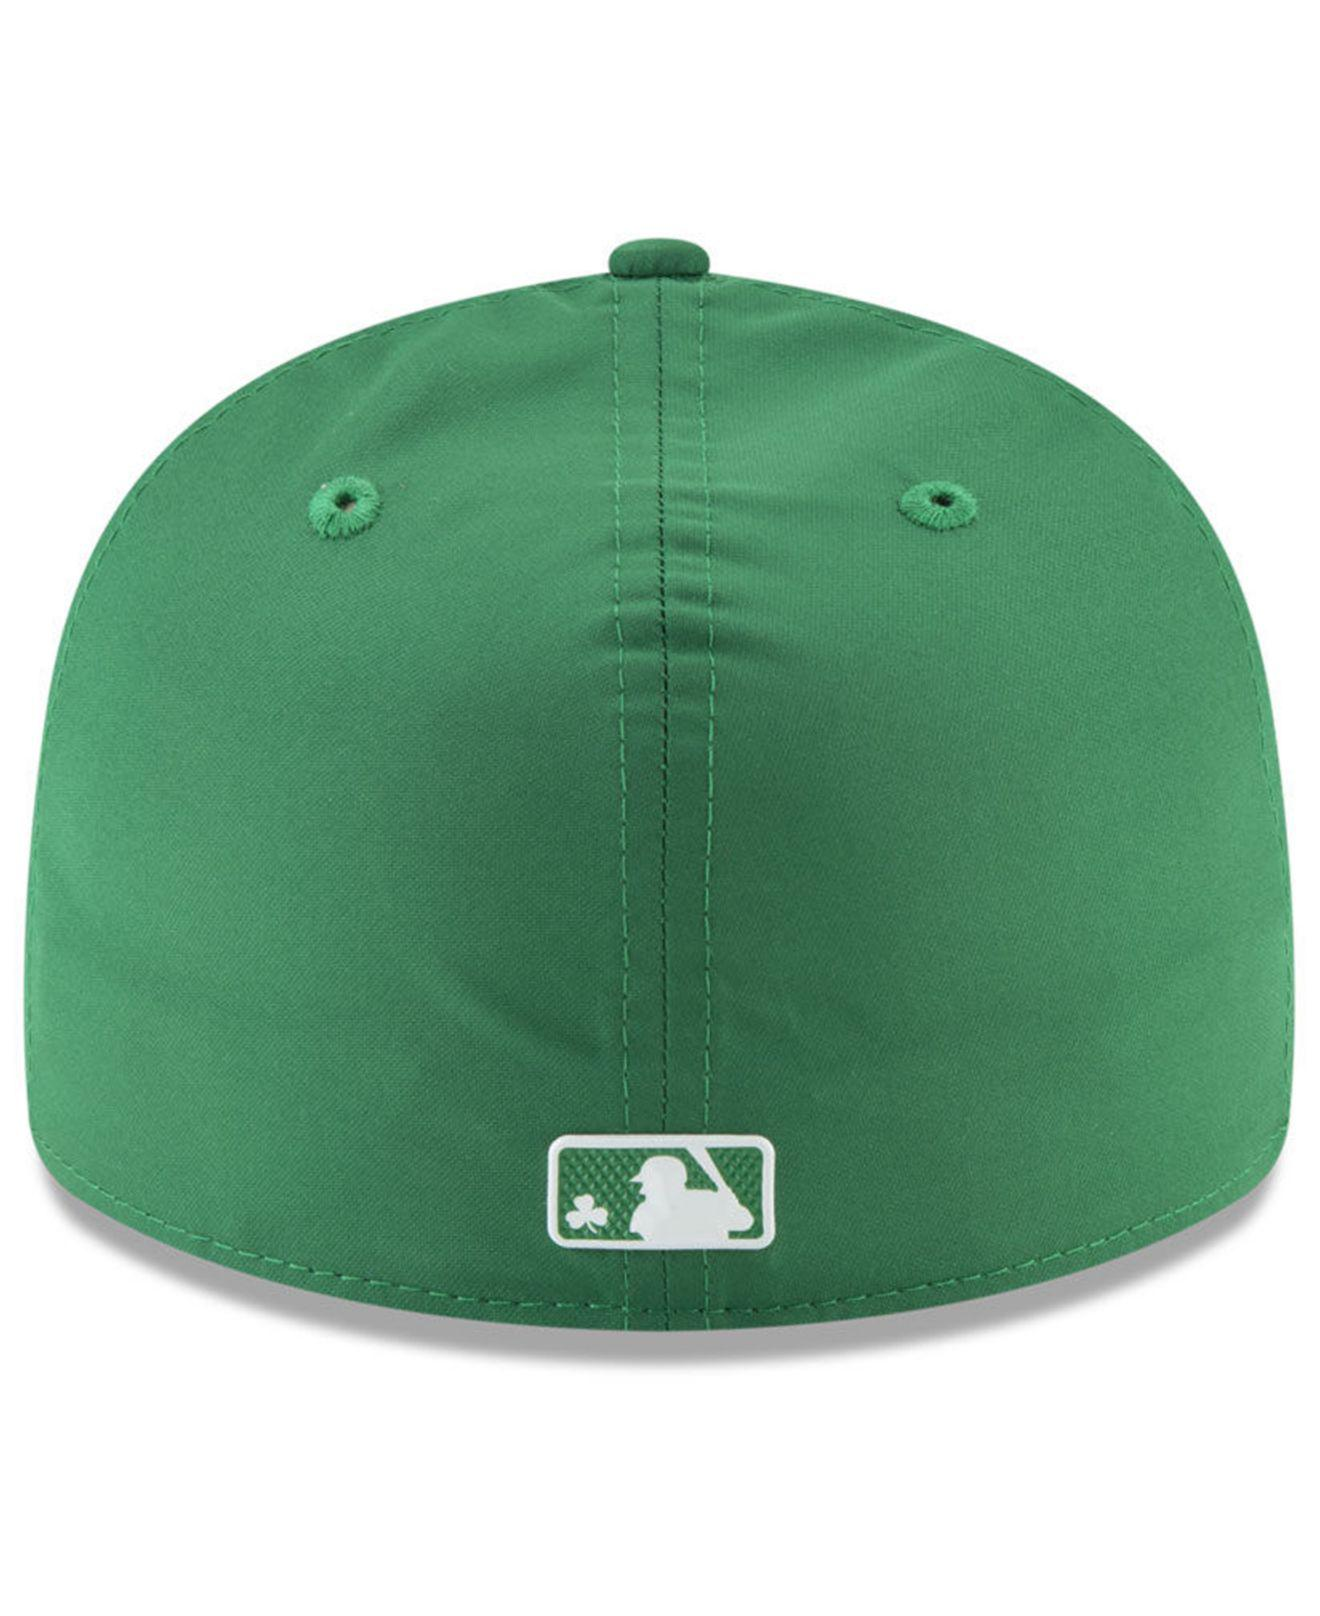 discount sale 58b08 e4d6f ... profile 59fifty fitted hat heathered orange 0f550 46499  get francisco  giants st. pattys day pro light low crown 59fifty fitted. view fullscreen